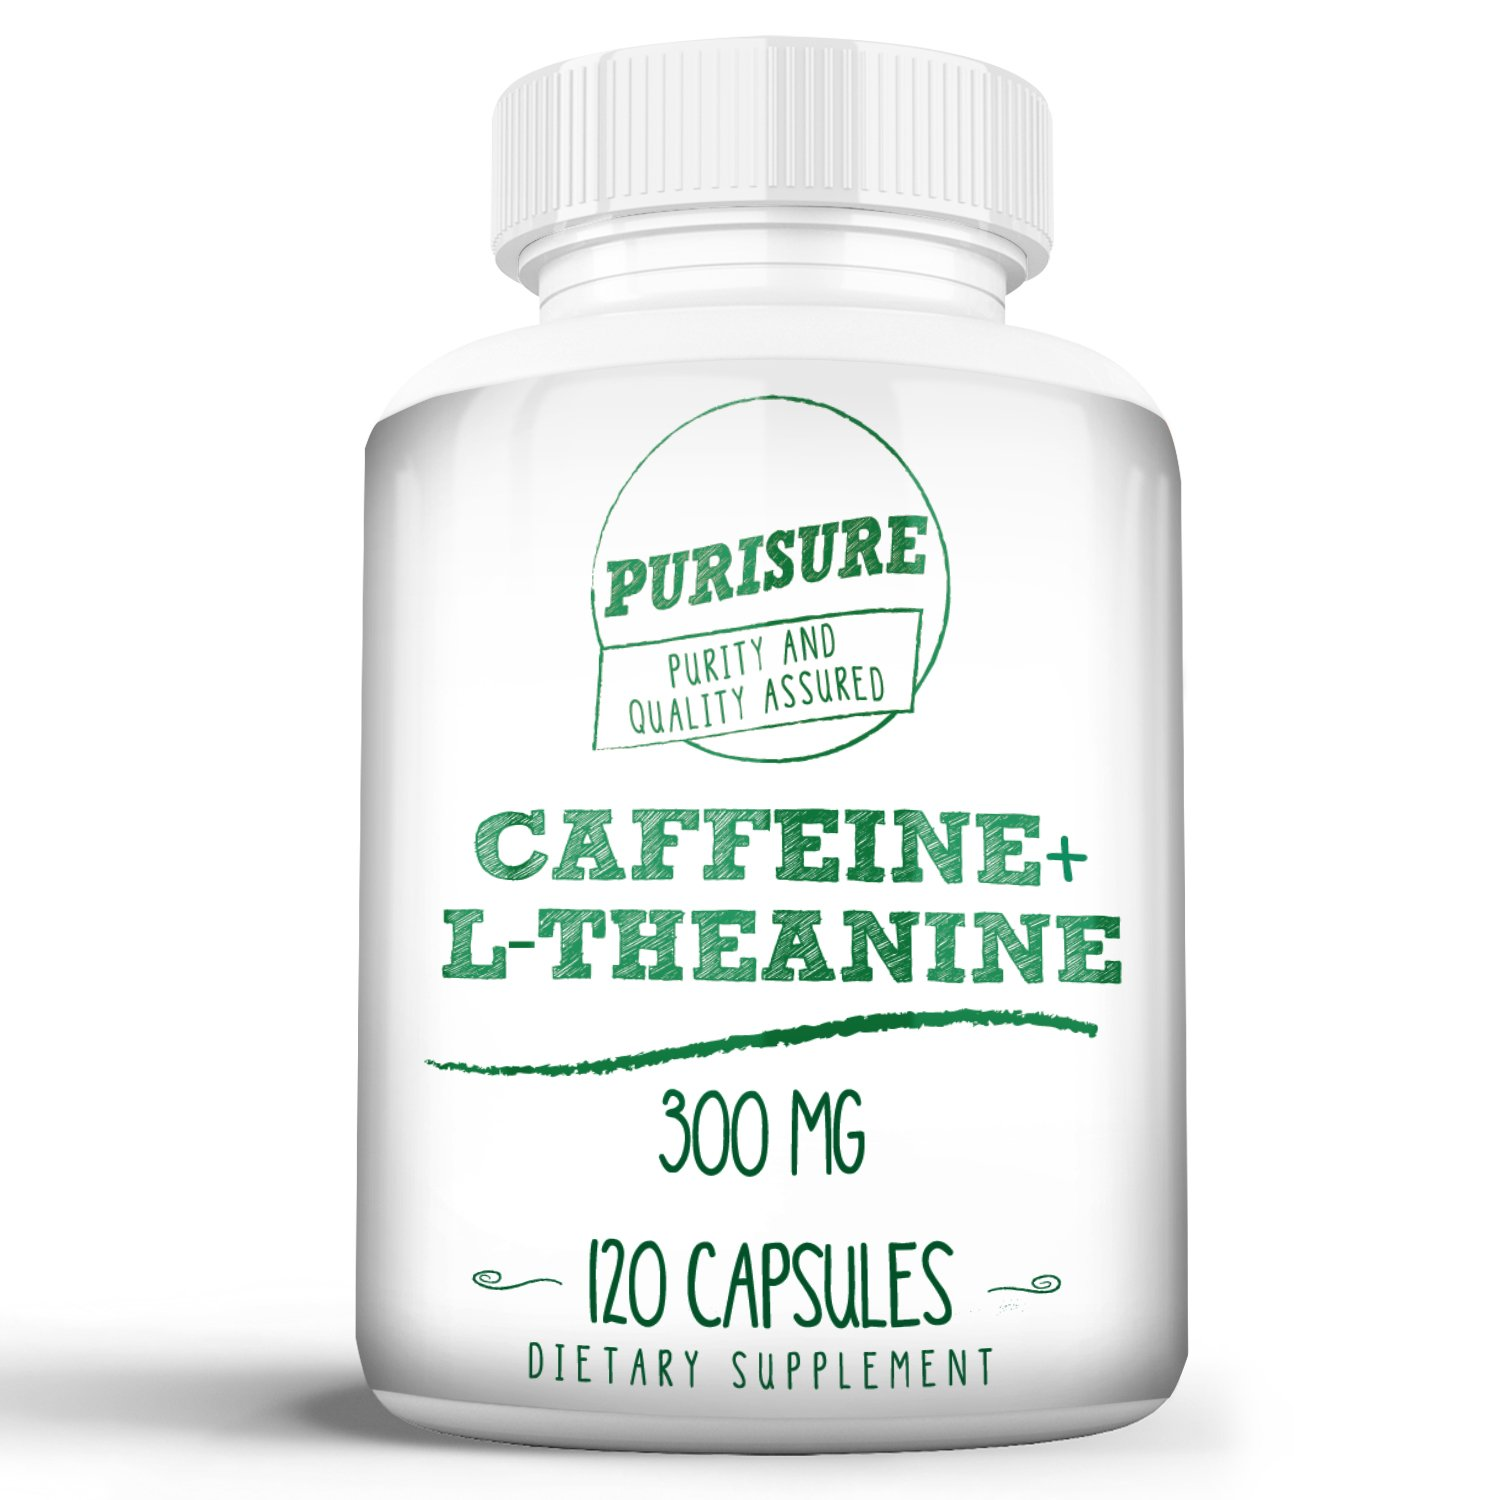 Caffeine + L-Theanine 300 mg (120 Capsules) | No Crash or Jitters | Alert and Productive | Calm and Relaxed | Nootropic Supplement (120 Capsules)